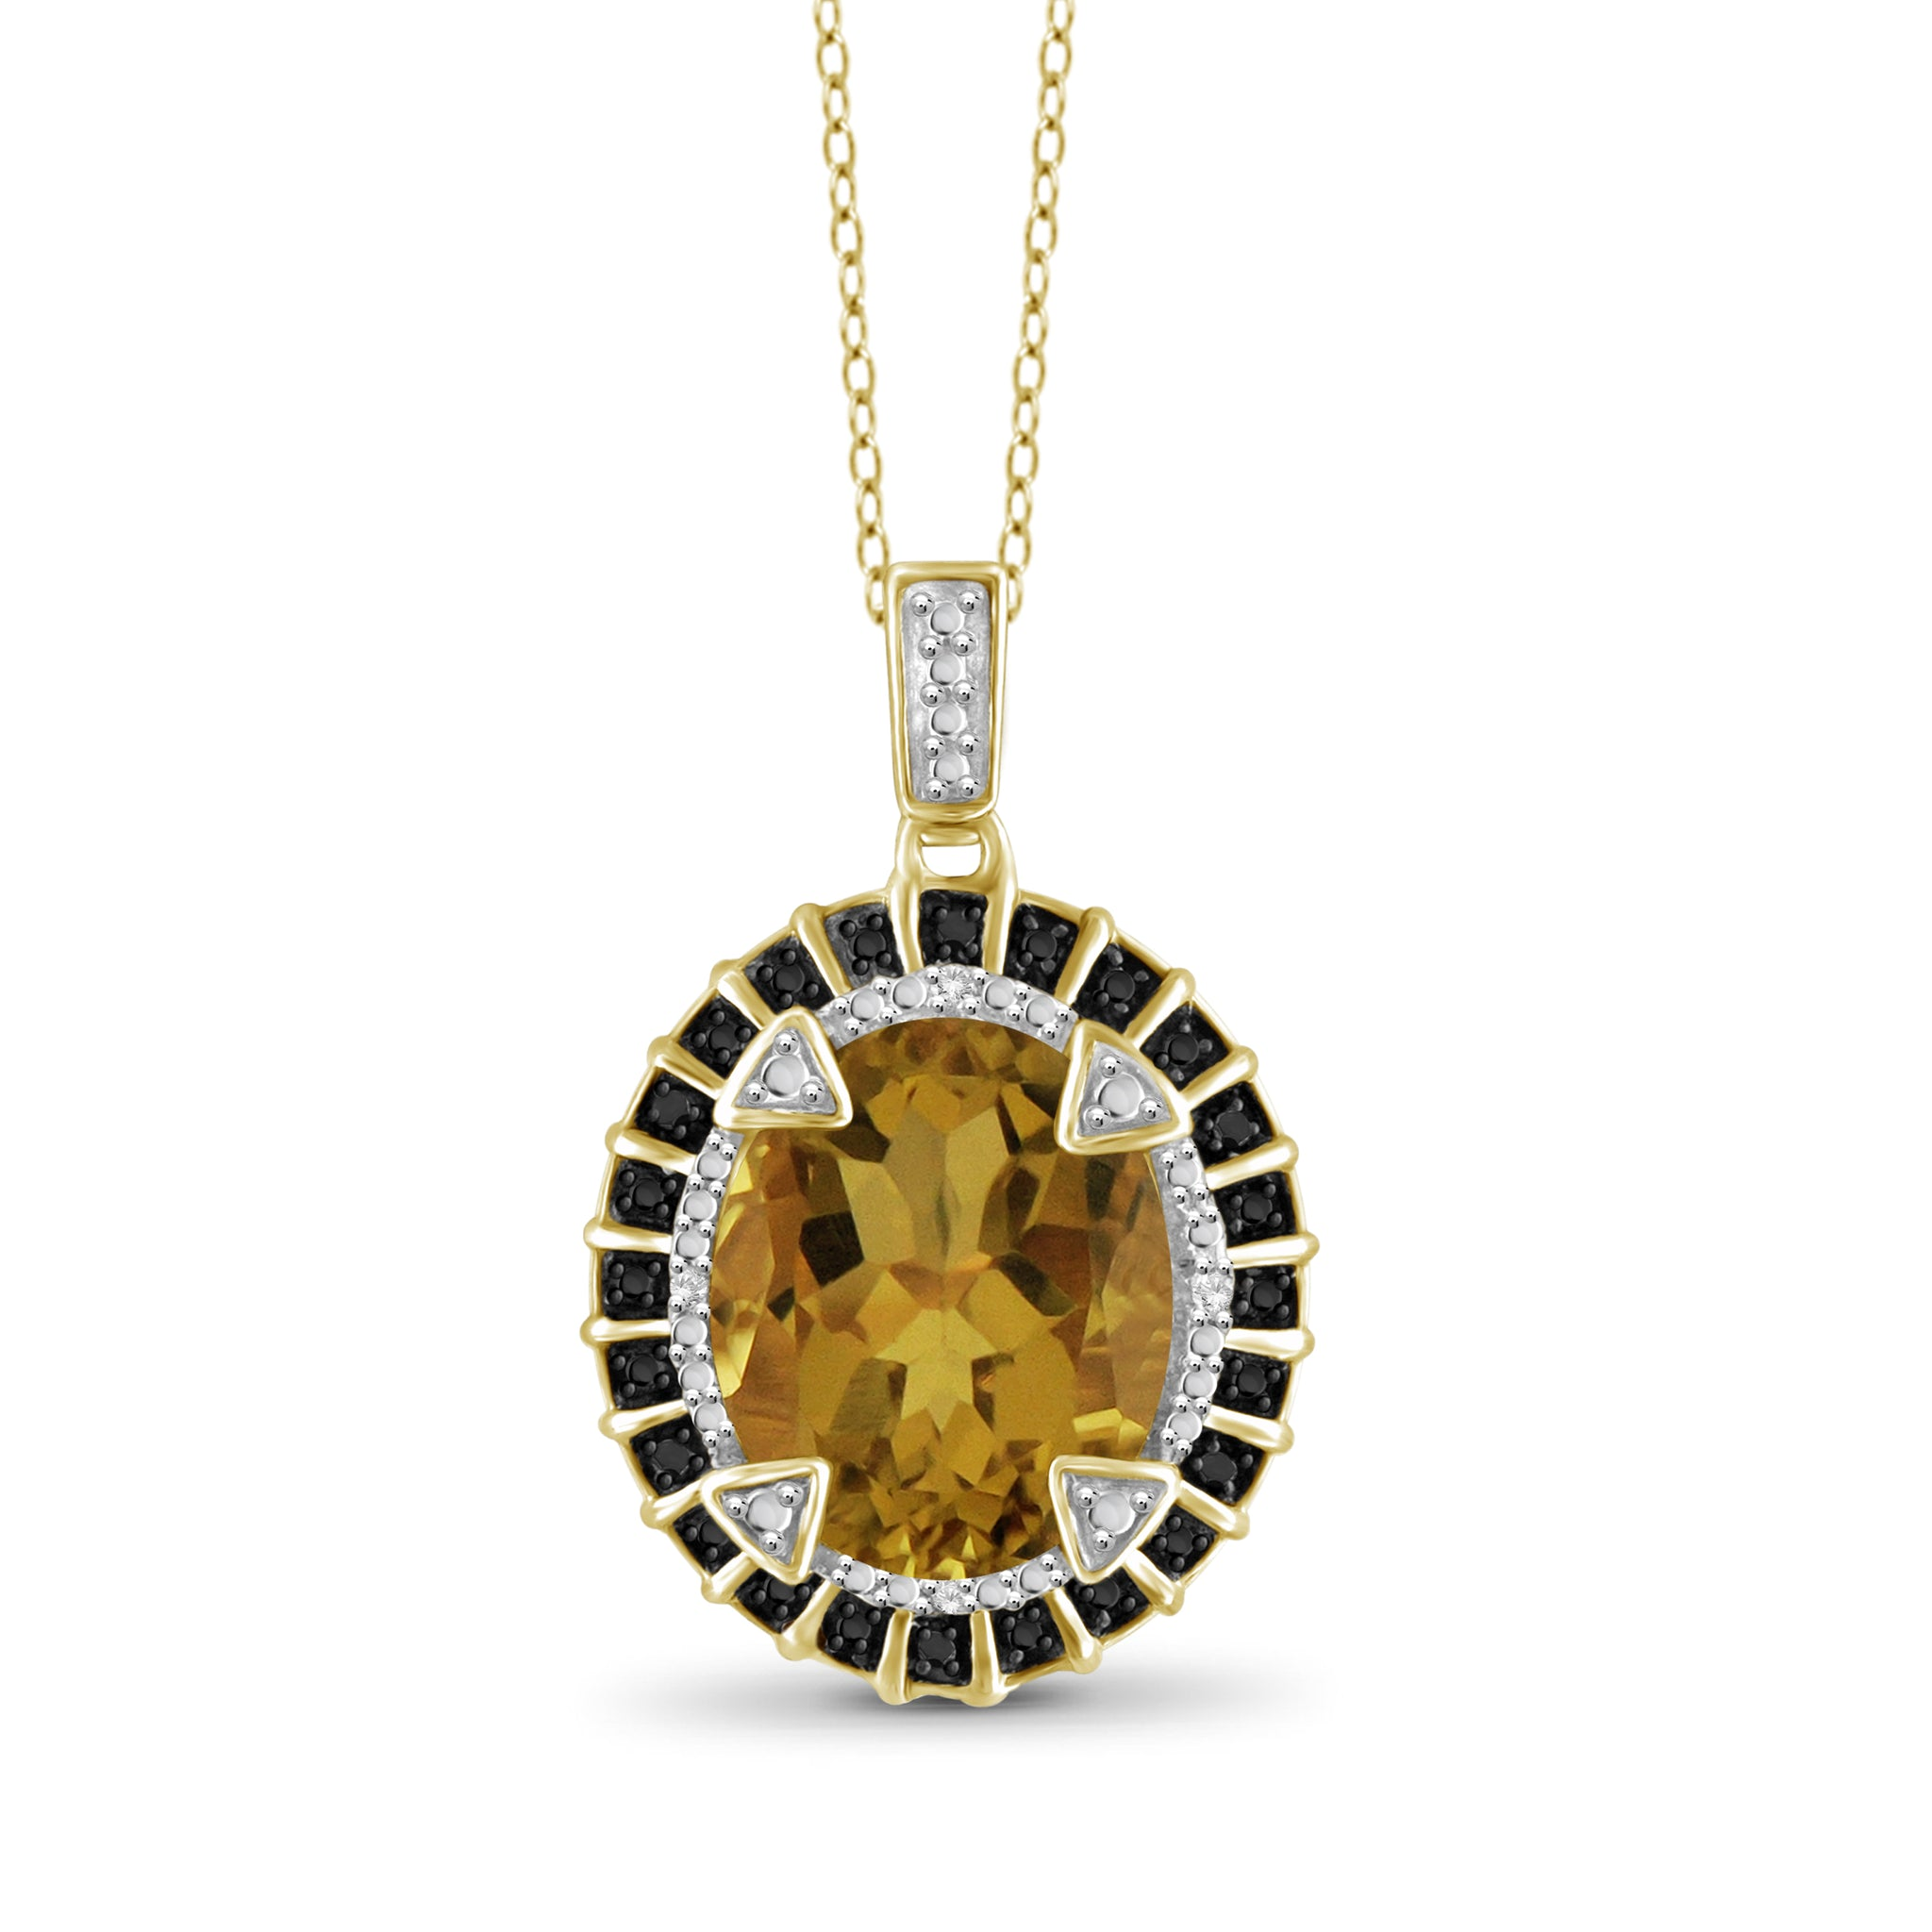 JewelersClub 1 1/2 Carat T.G.W. Whiskey And Black & White Diamond Accent 14kt Gold Over Silver Fashion Pendant